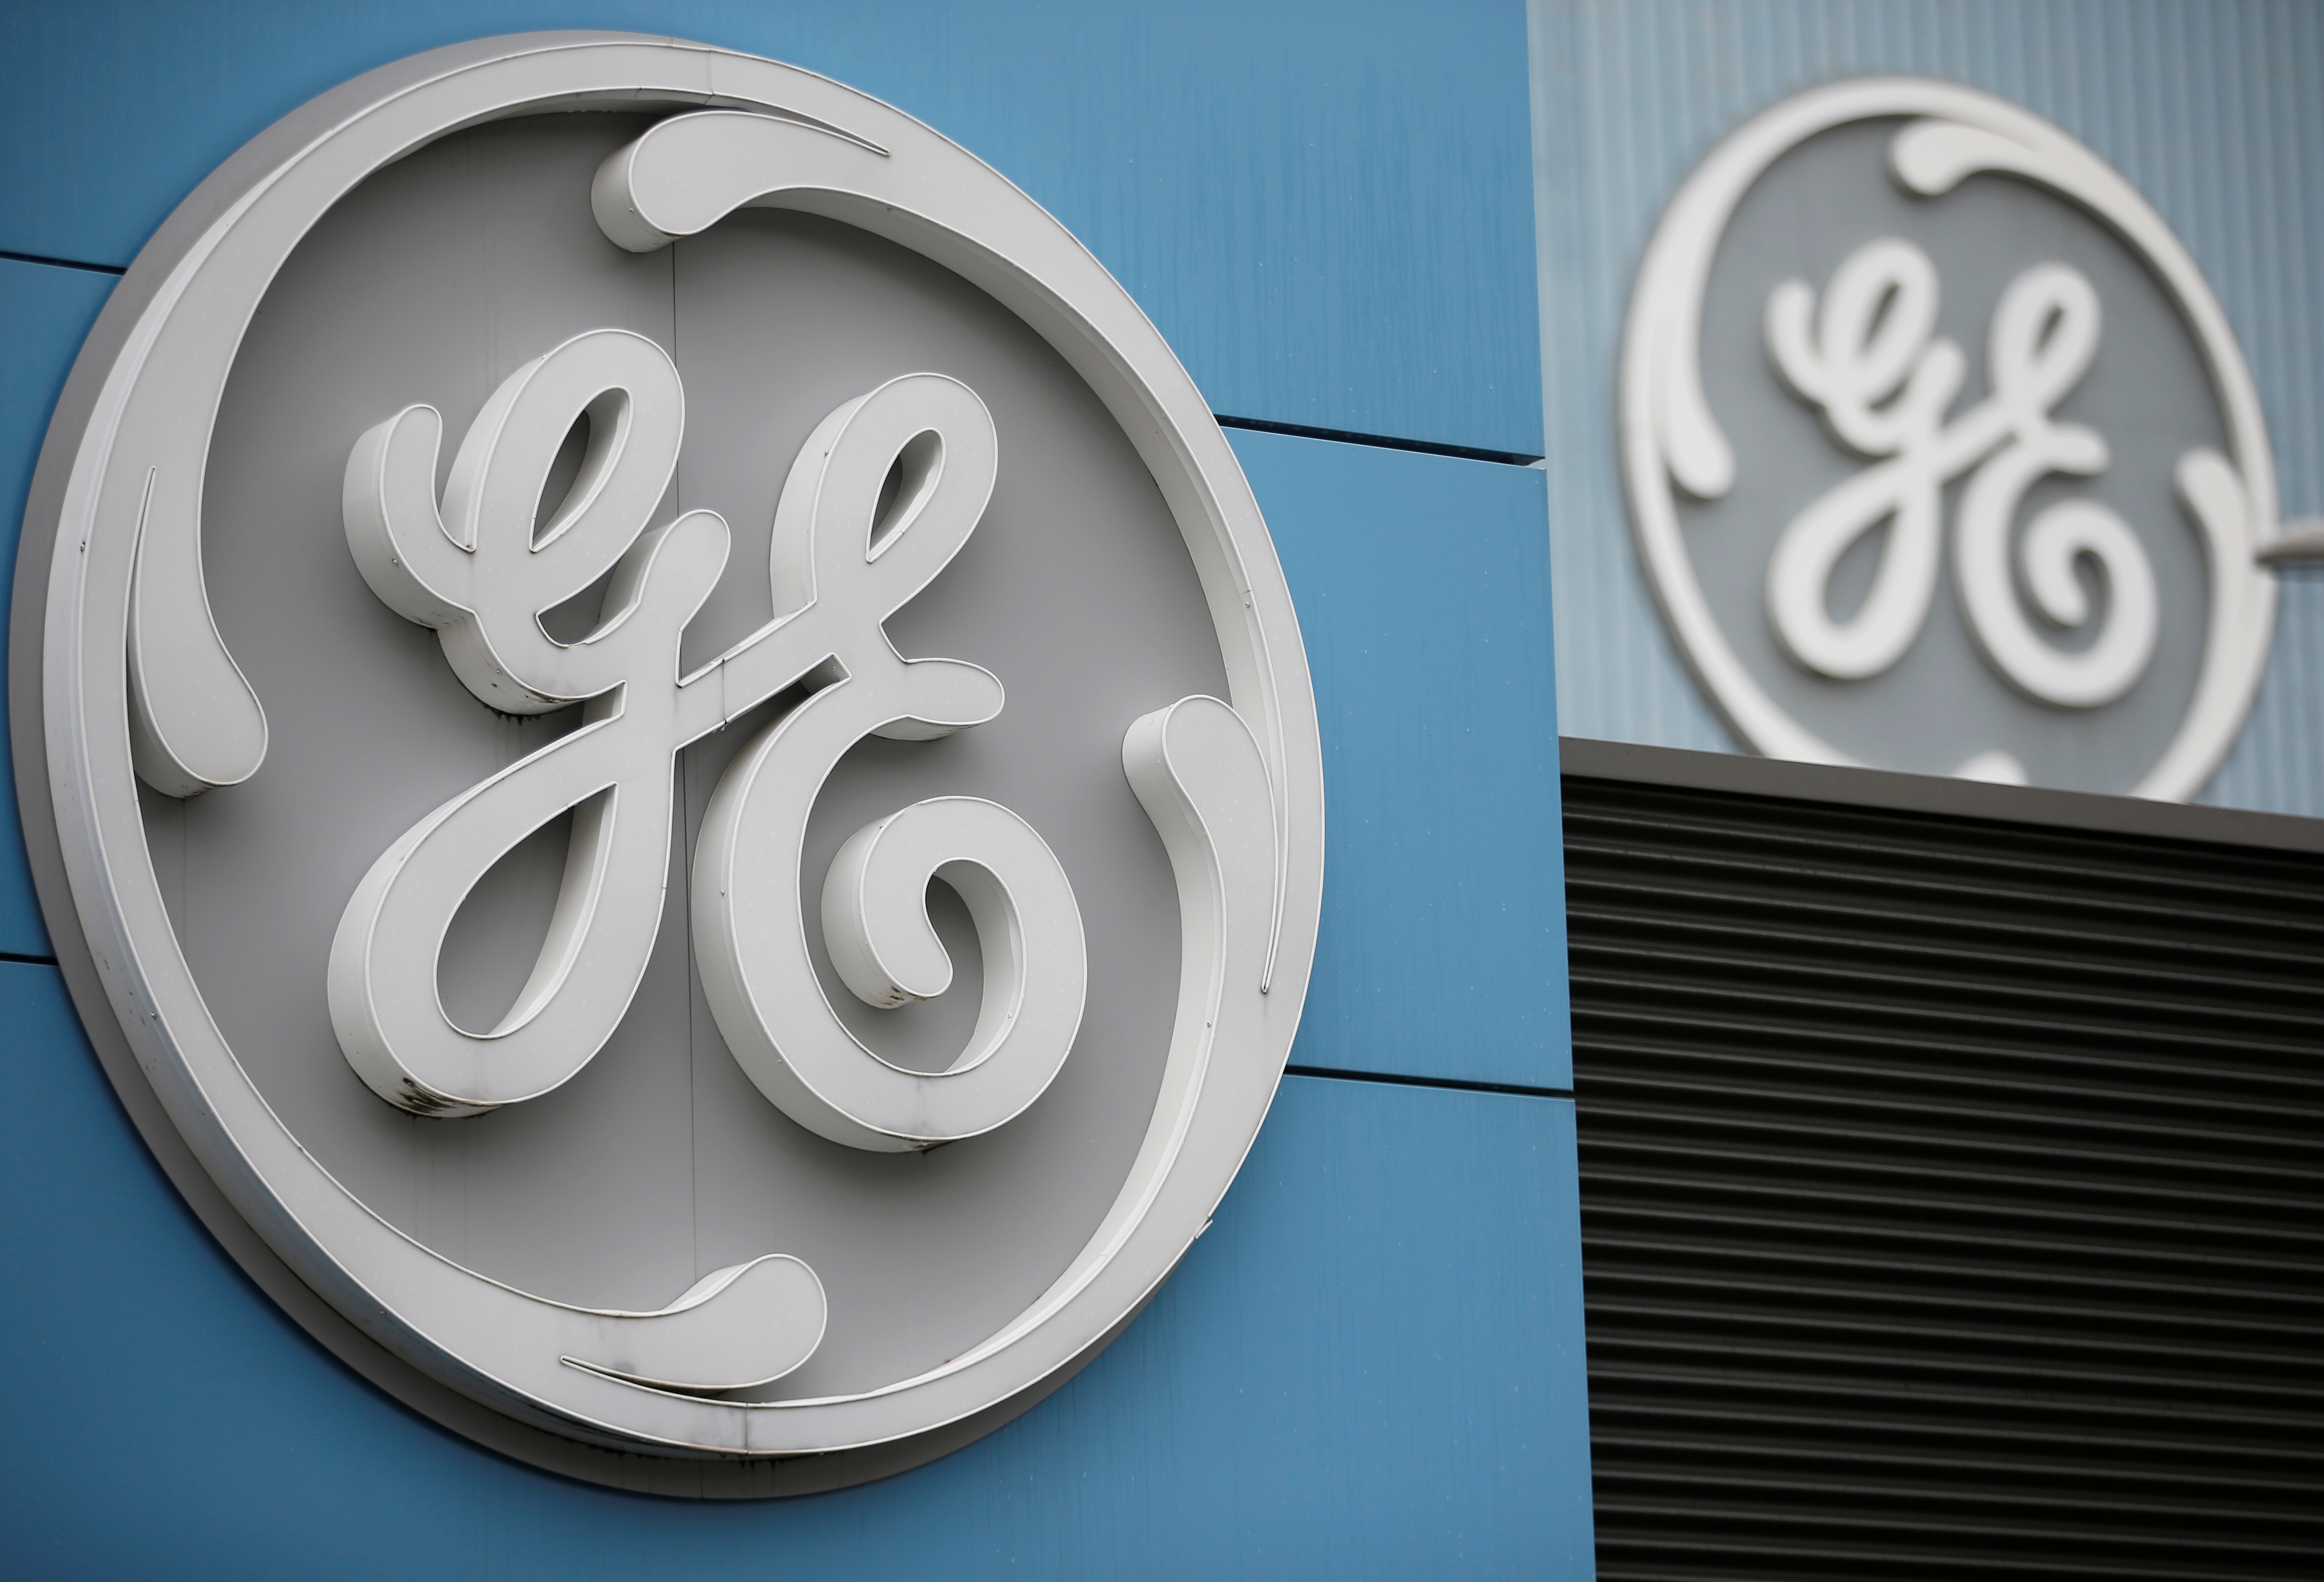 The logo of U.S. conglomerate General Electric is seen on the company building in Belfort, France, October 19, 2019. REUTERS/Vincent Kessler